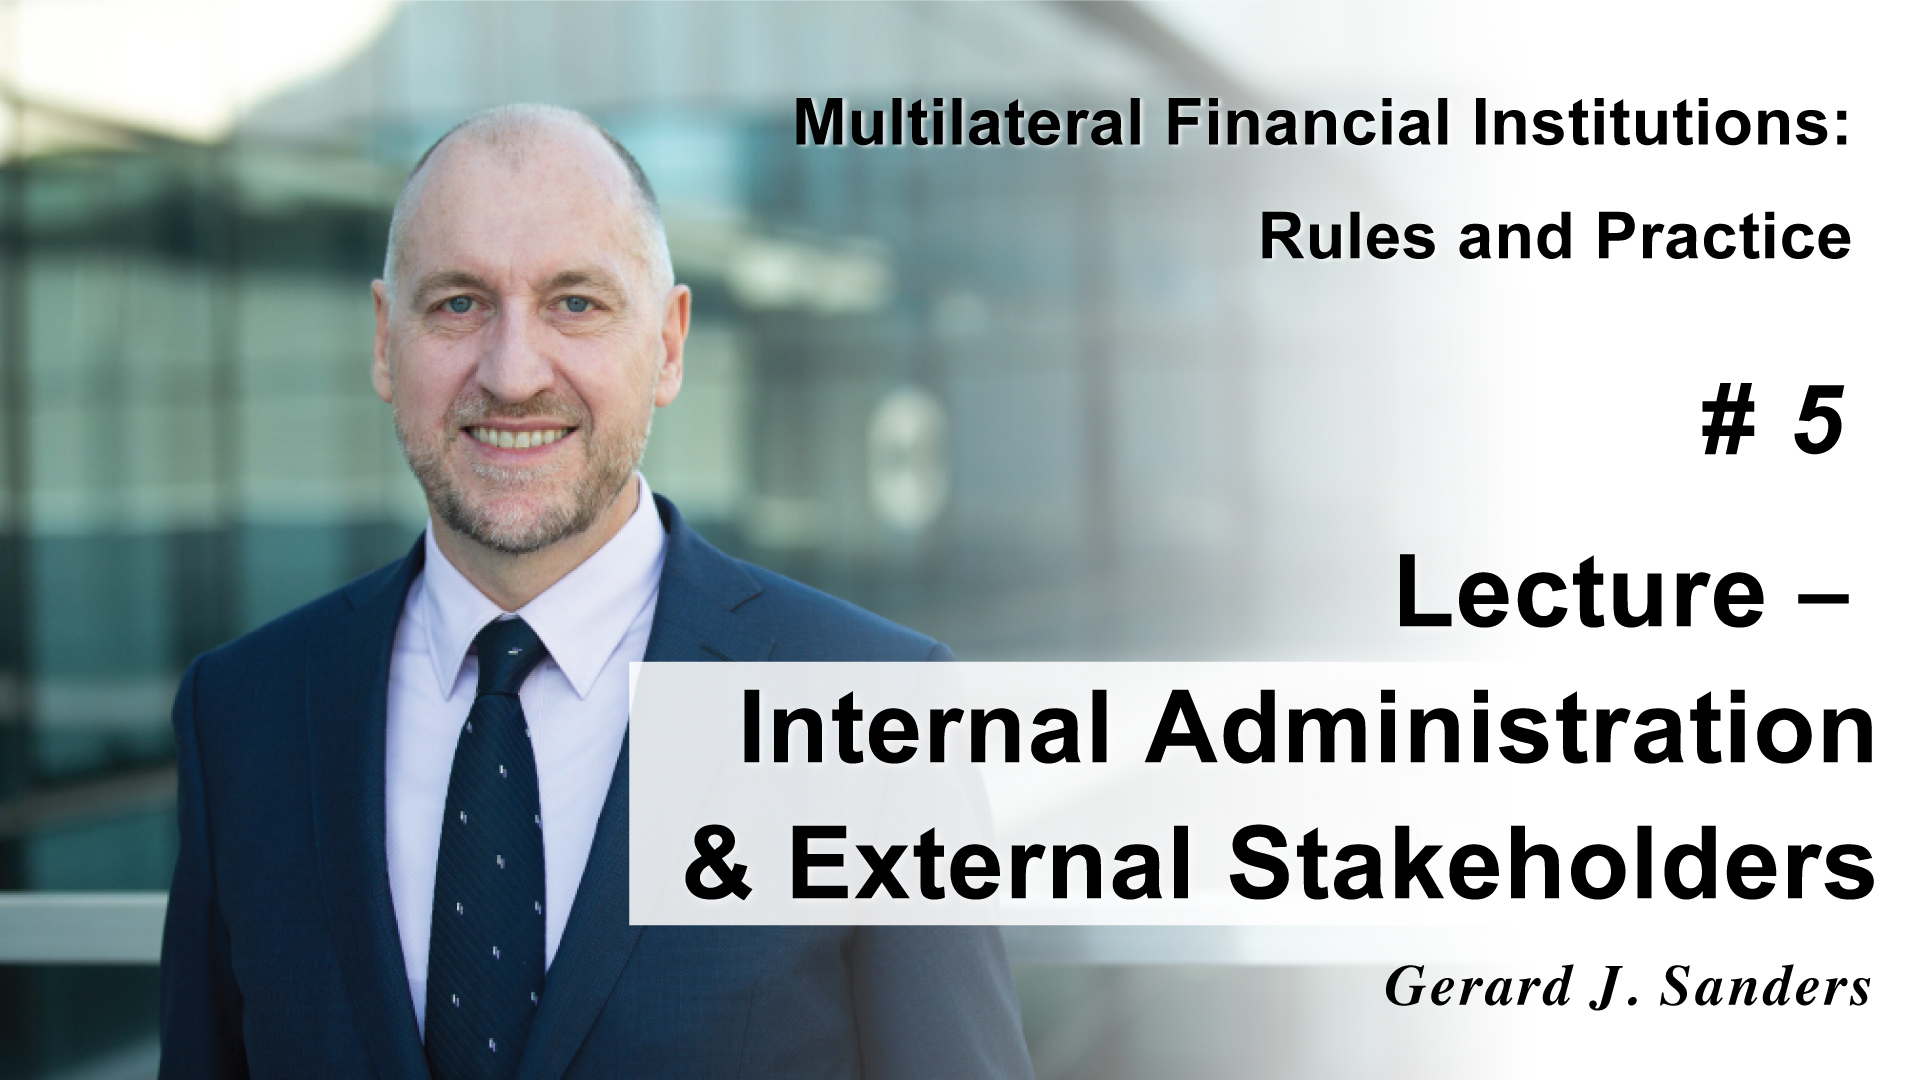 Lecture - Internal Administration & External Stakeholders